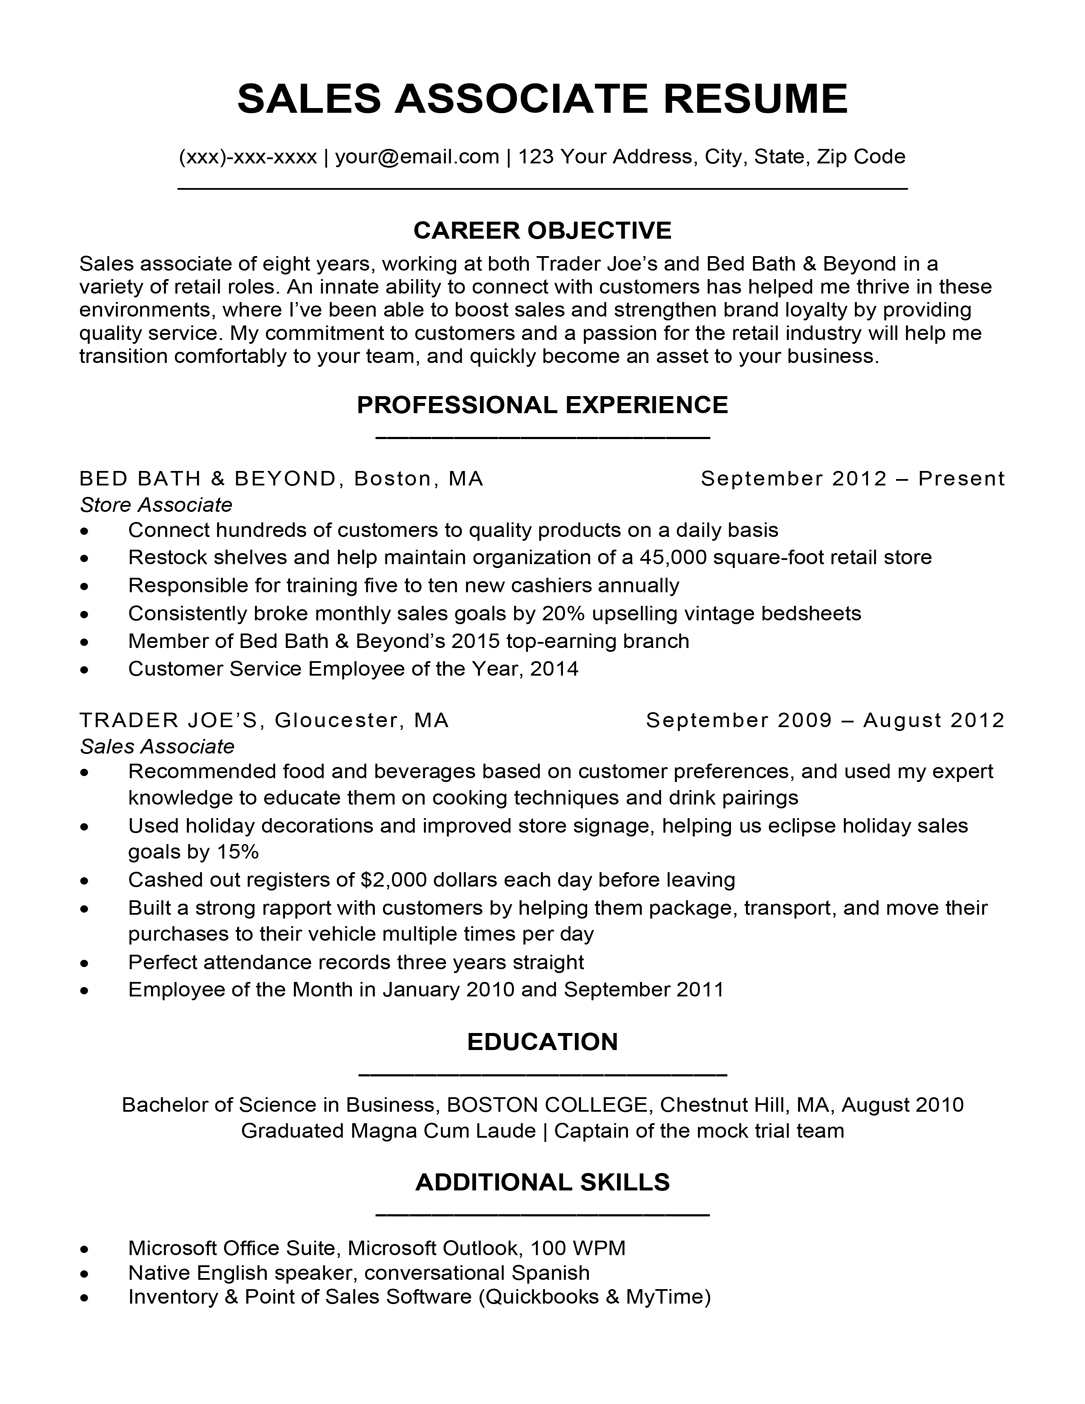 Sales Associate Resume Sample Writing Tips Resume Companion